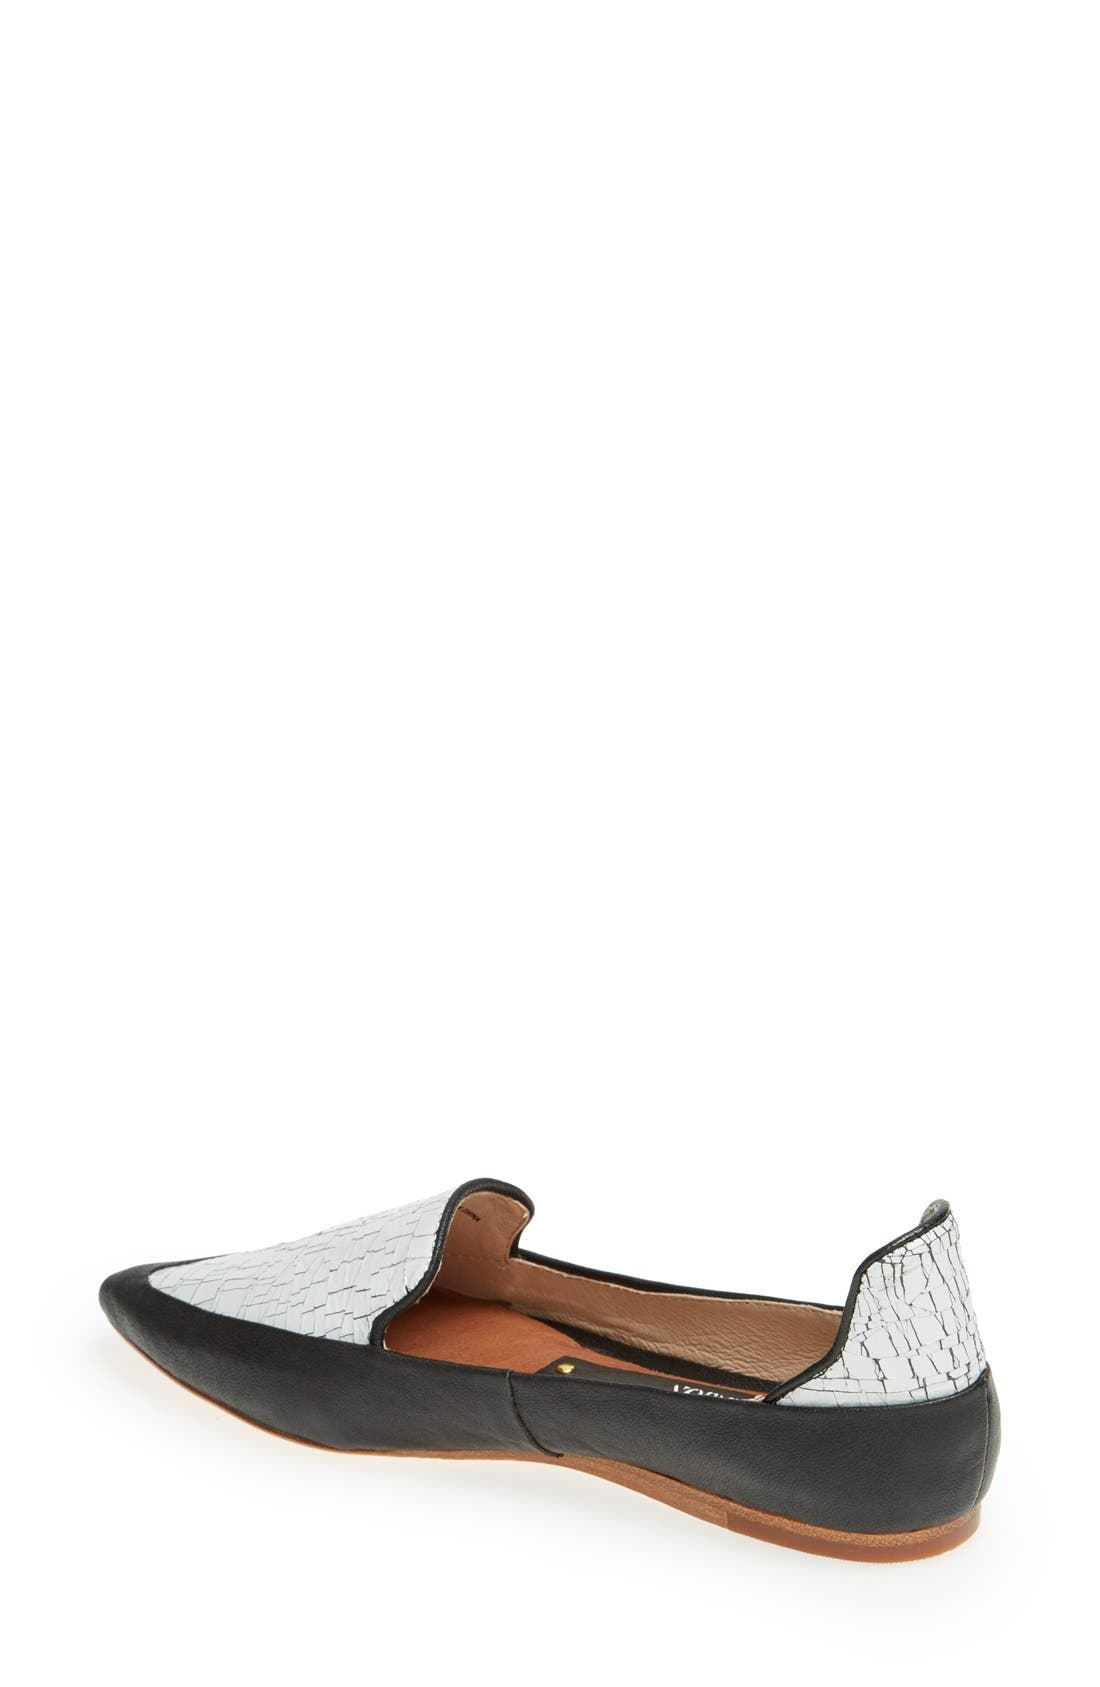 Alternate Image 2  - Matt Bernson 'Verona' Leather Loafer (Women)